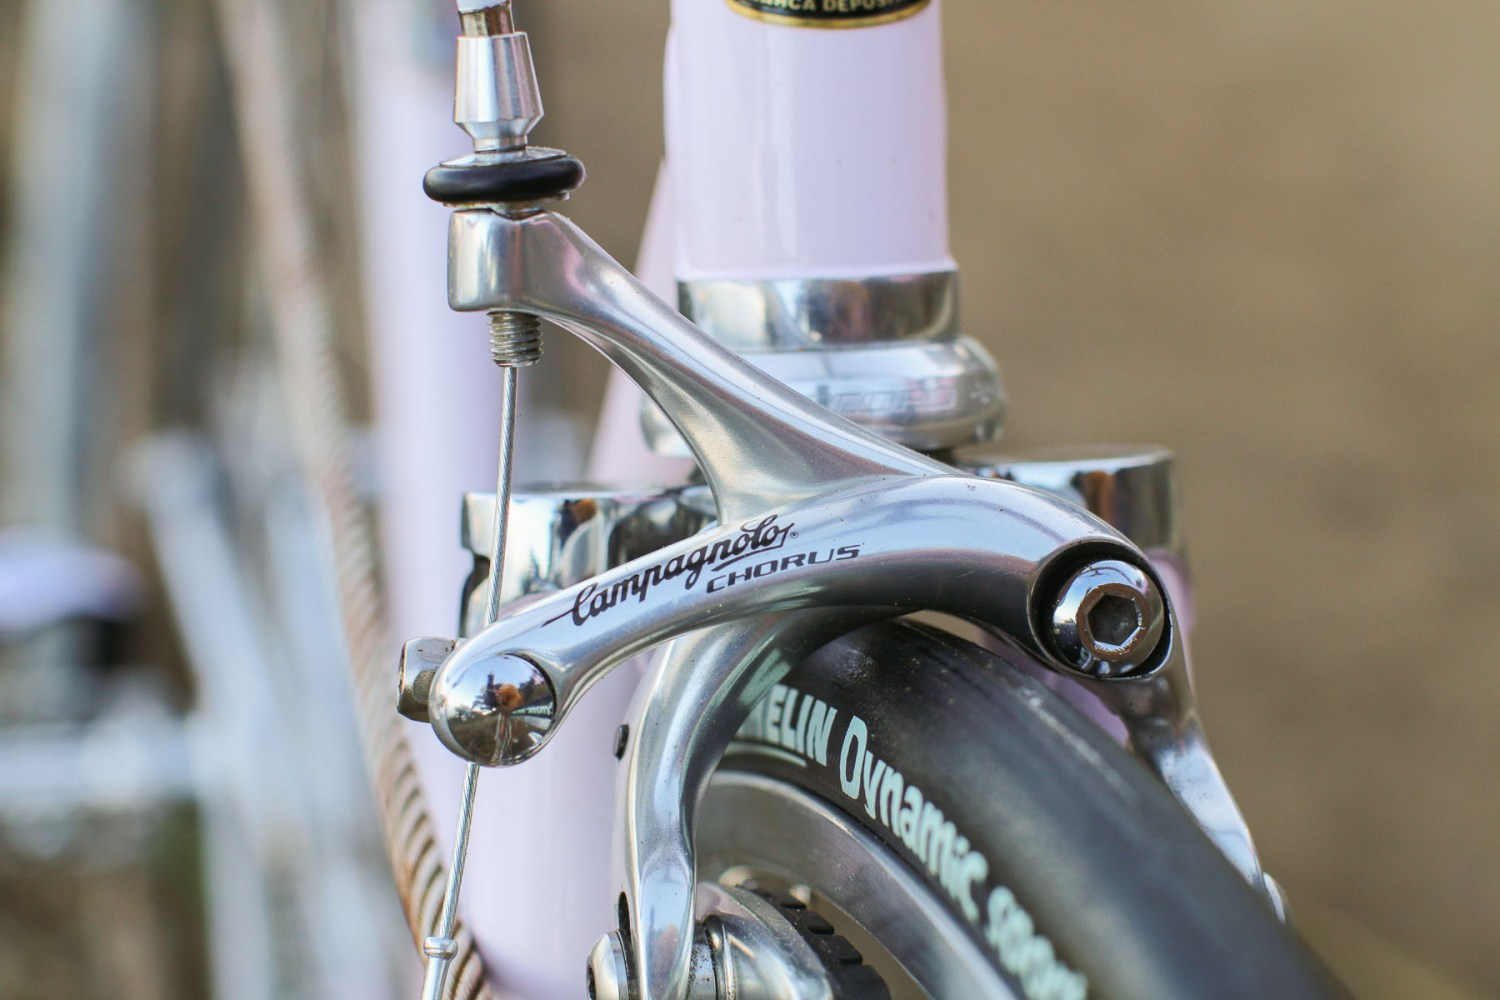 cinelli (38 of 73)